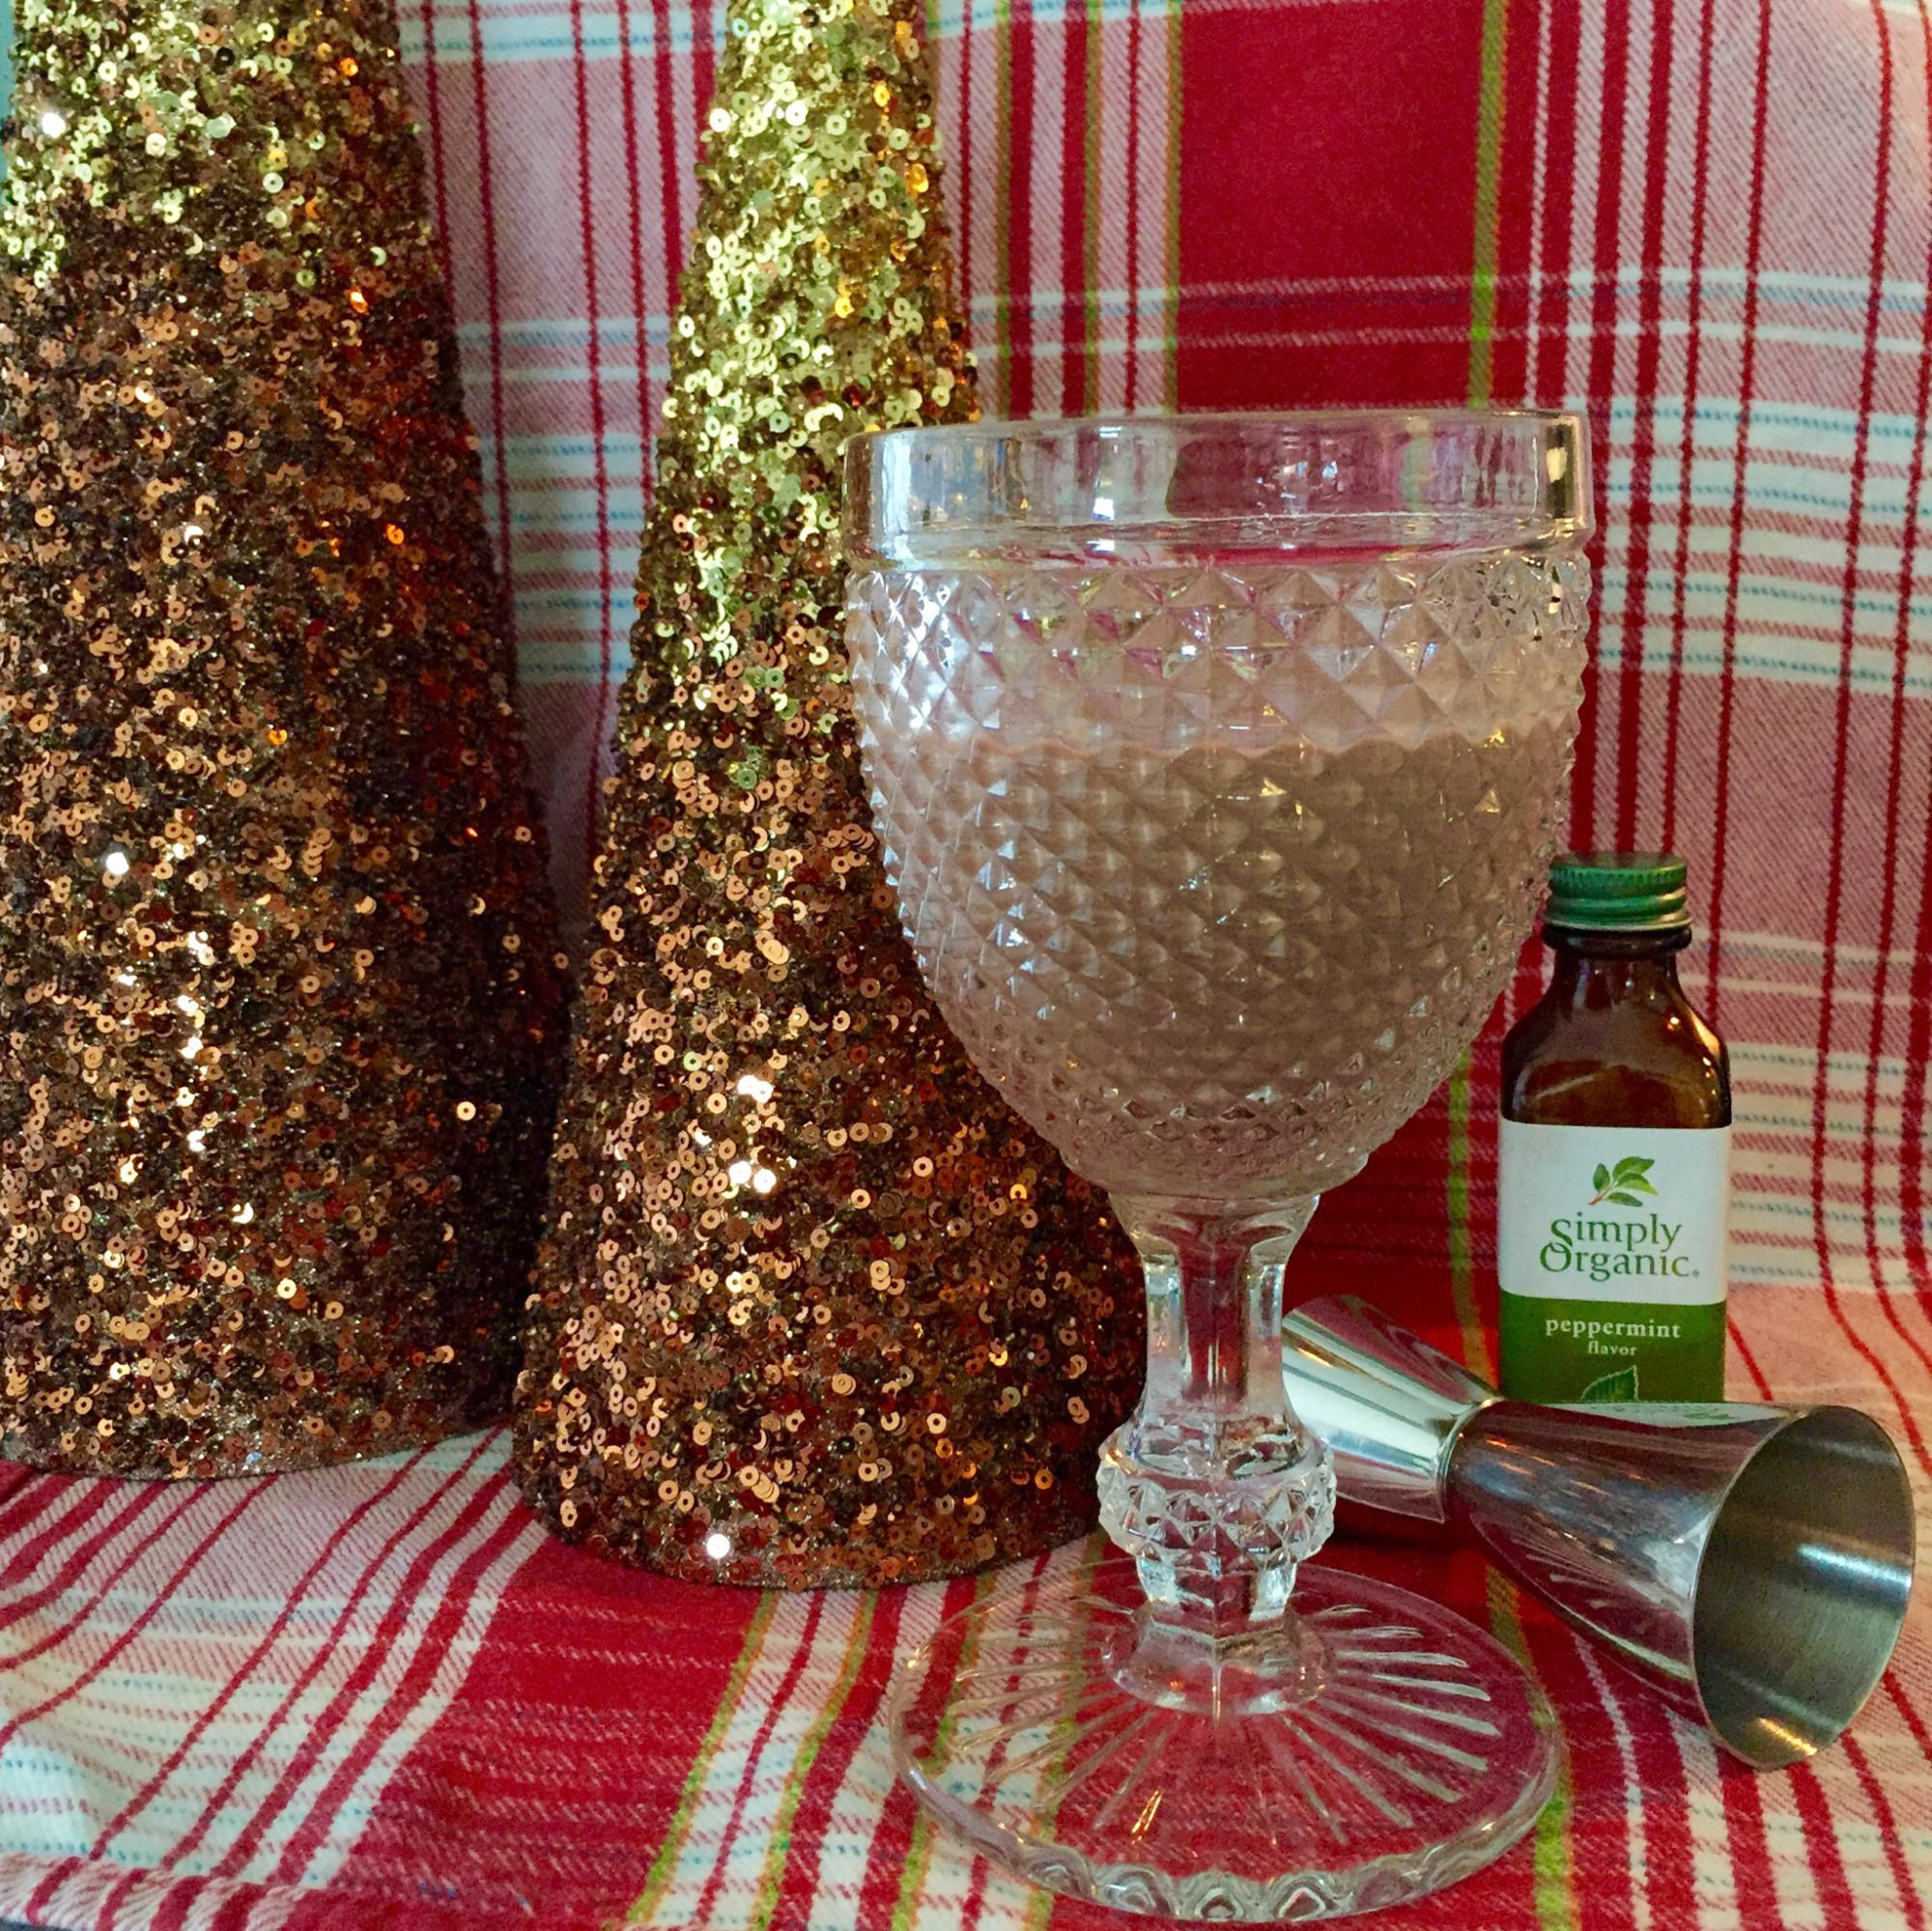 Garden Eats makes Emily von Euw's Chocolate Mylk with a twist - she made it into a peppermint cocoa and a bourbon spiked adult treat!